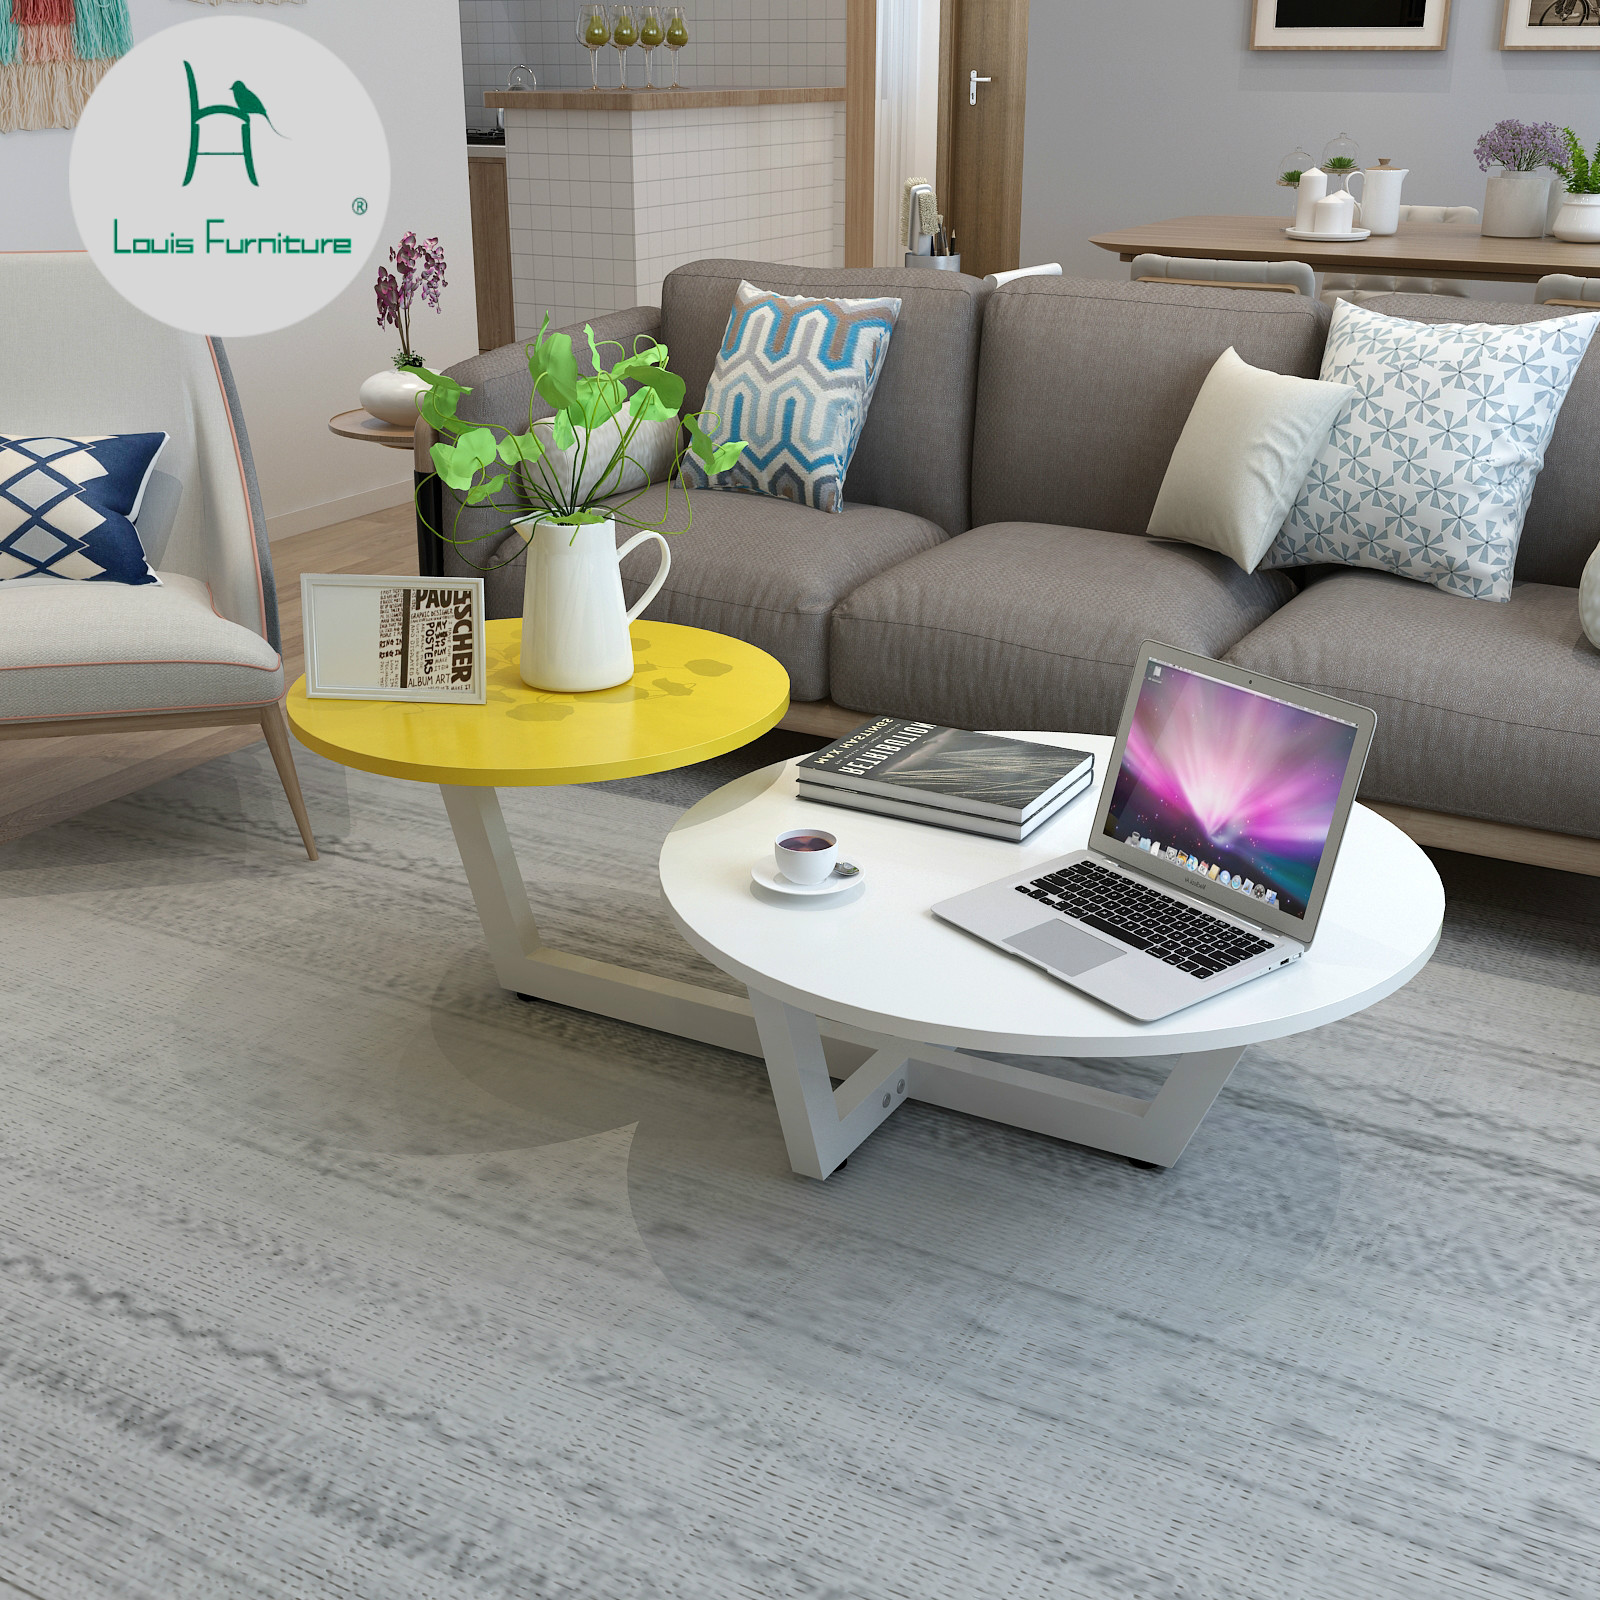 Us 59 9 Louis Fashion Coffee Tables Modern Minimalist Living Room Small Apartment Mini European Style In From Furniture On Aliexpress